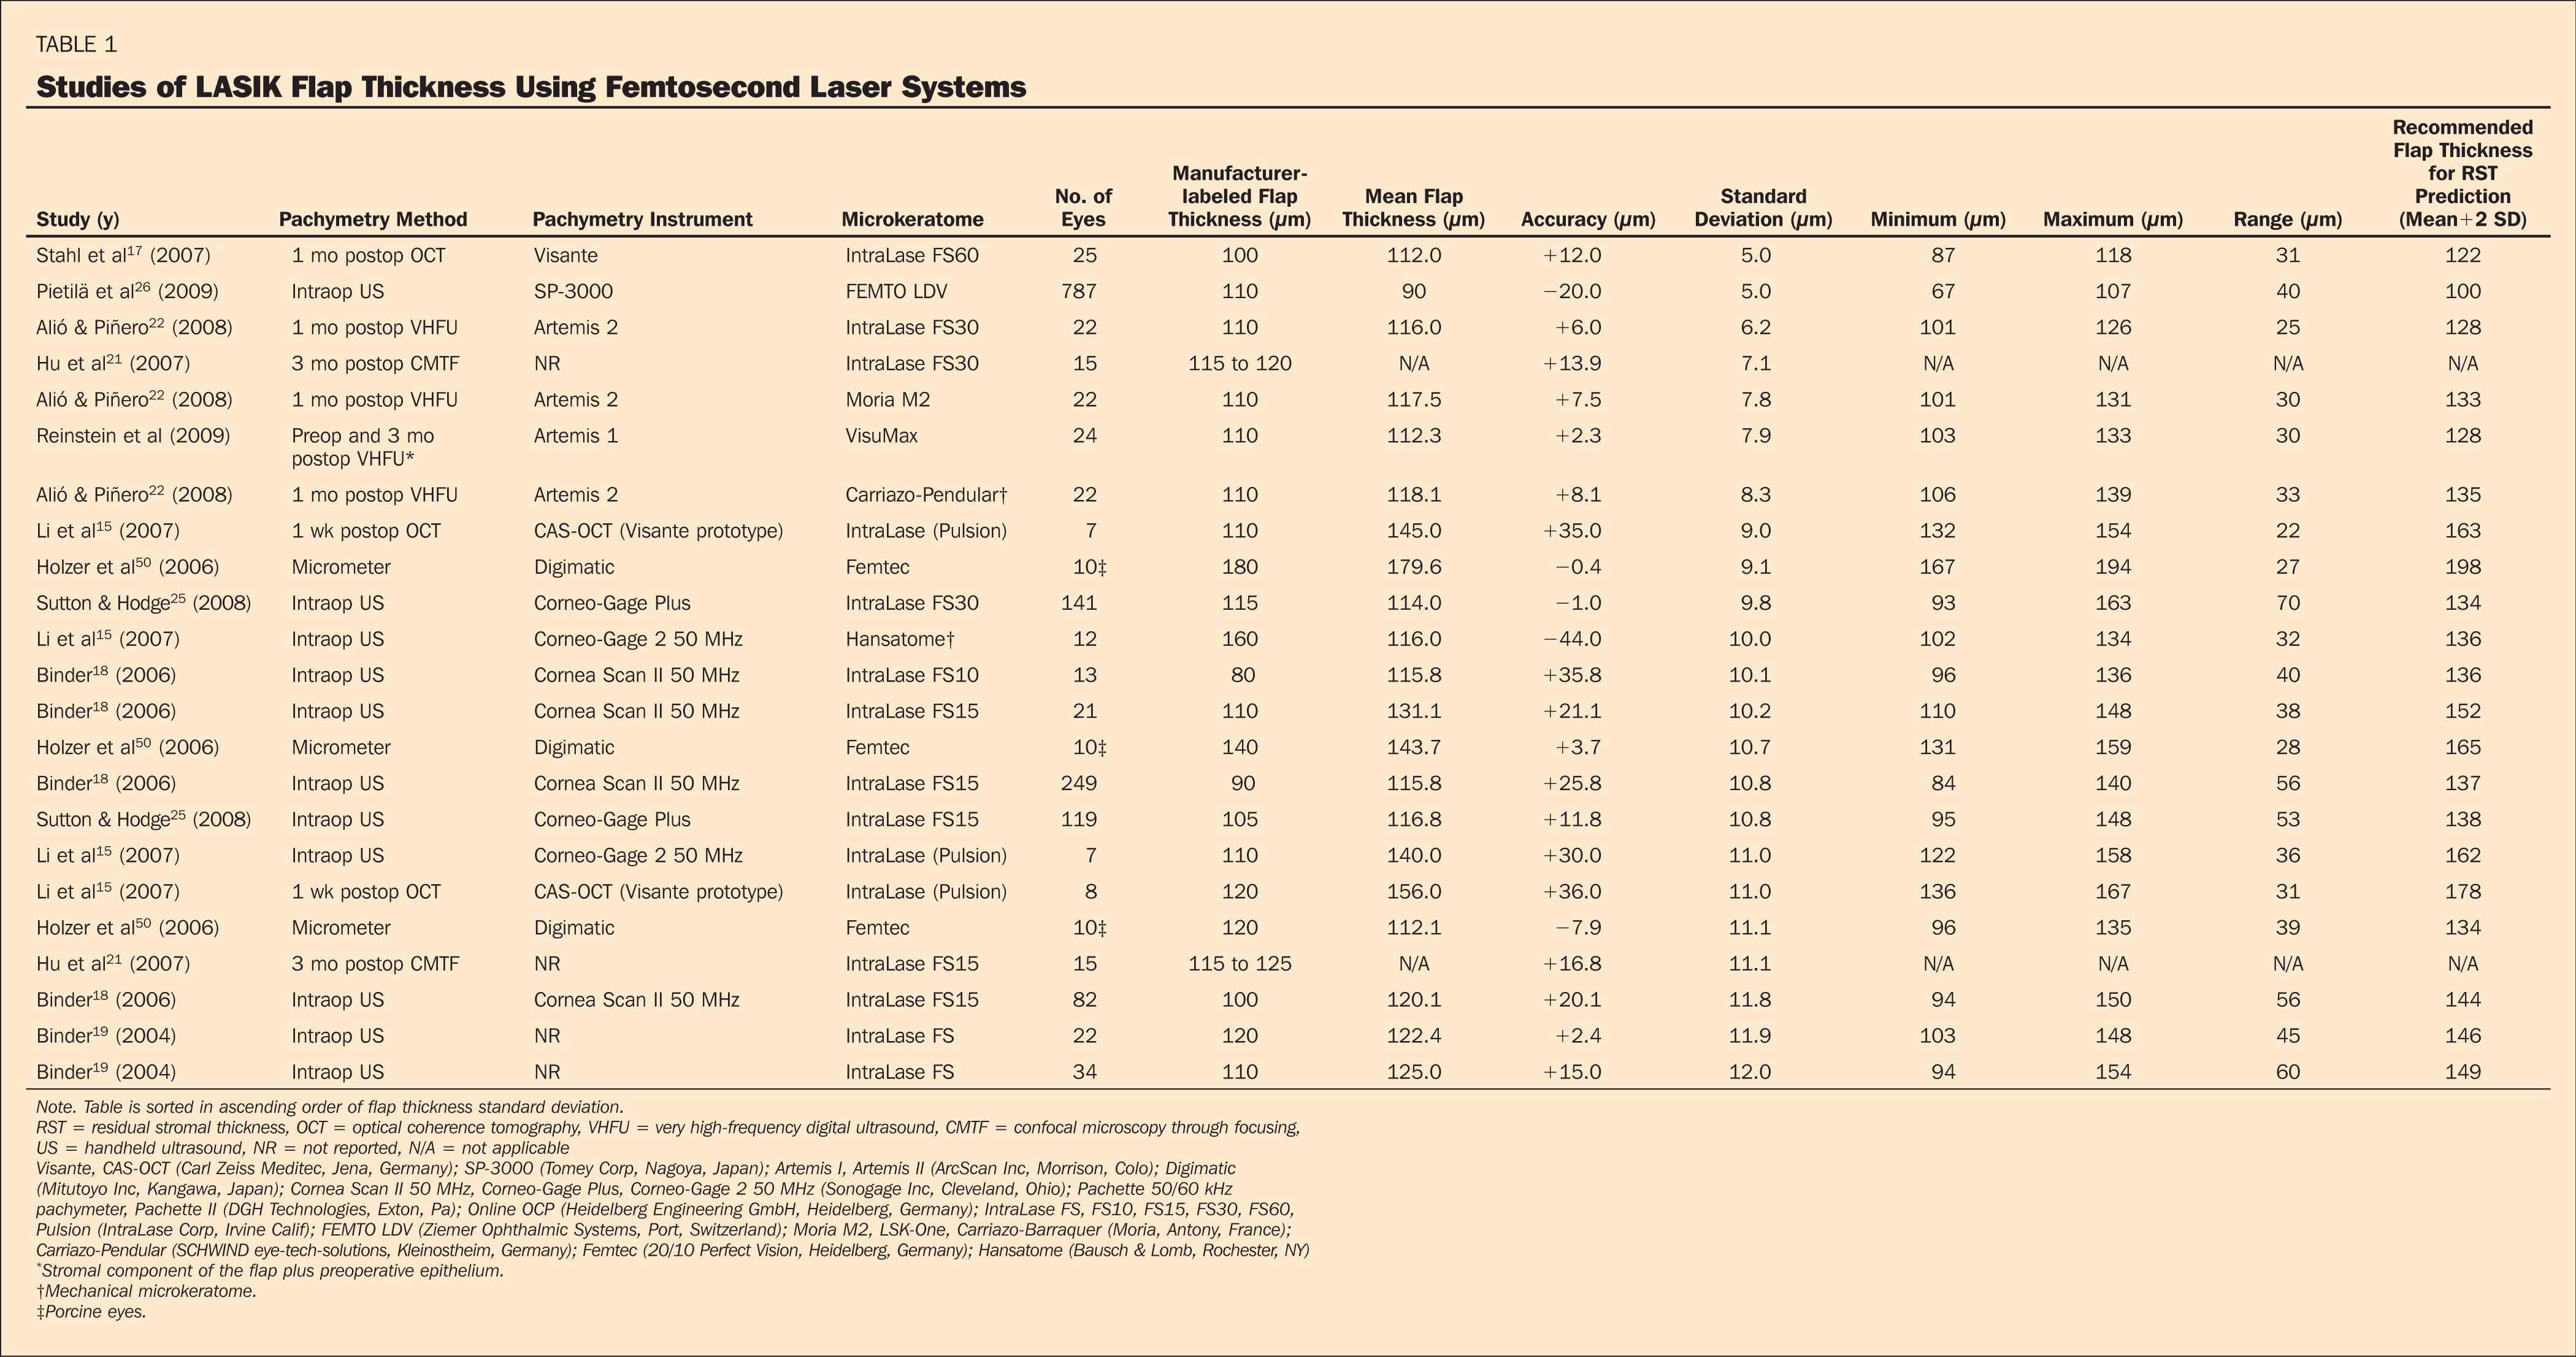 Studies of LASIK Flap Thickness Using Femtosecond Laser Systems